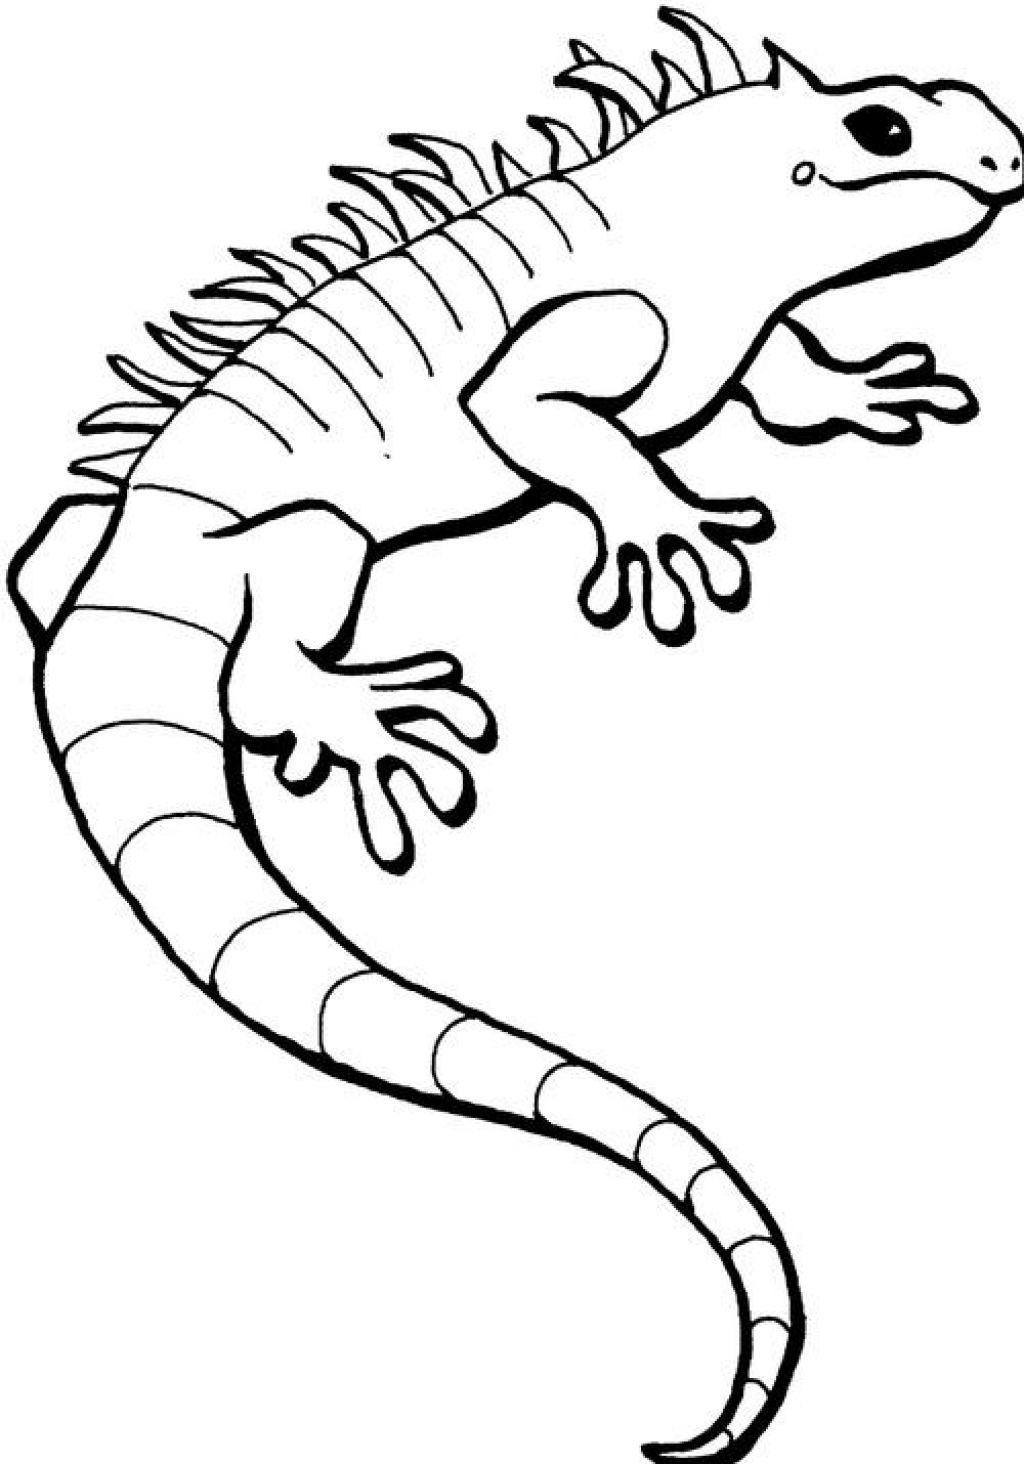 1024x1464 Iguana Coloring Page Free Printable Pages For Kids